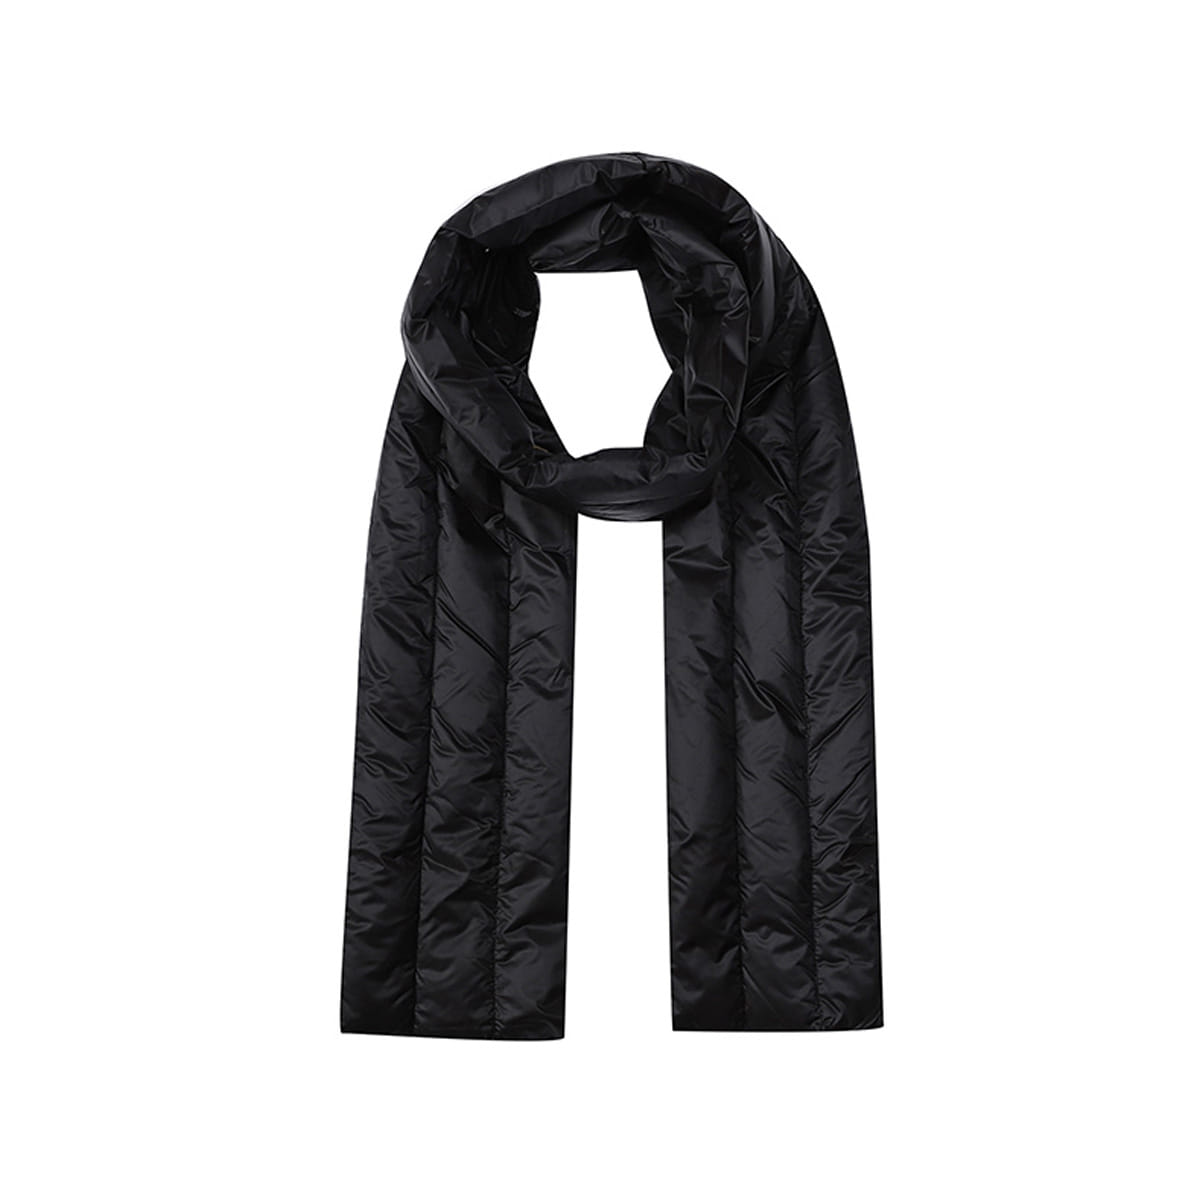 [ROCKY MOUNTAIN] SIX MONTH MUFFLER 'BLACK'